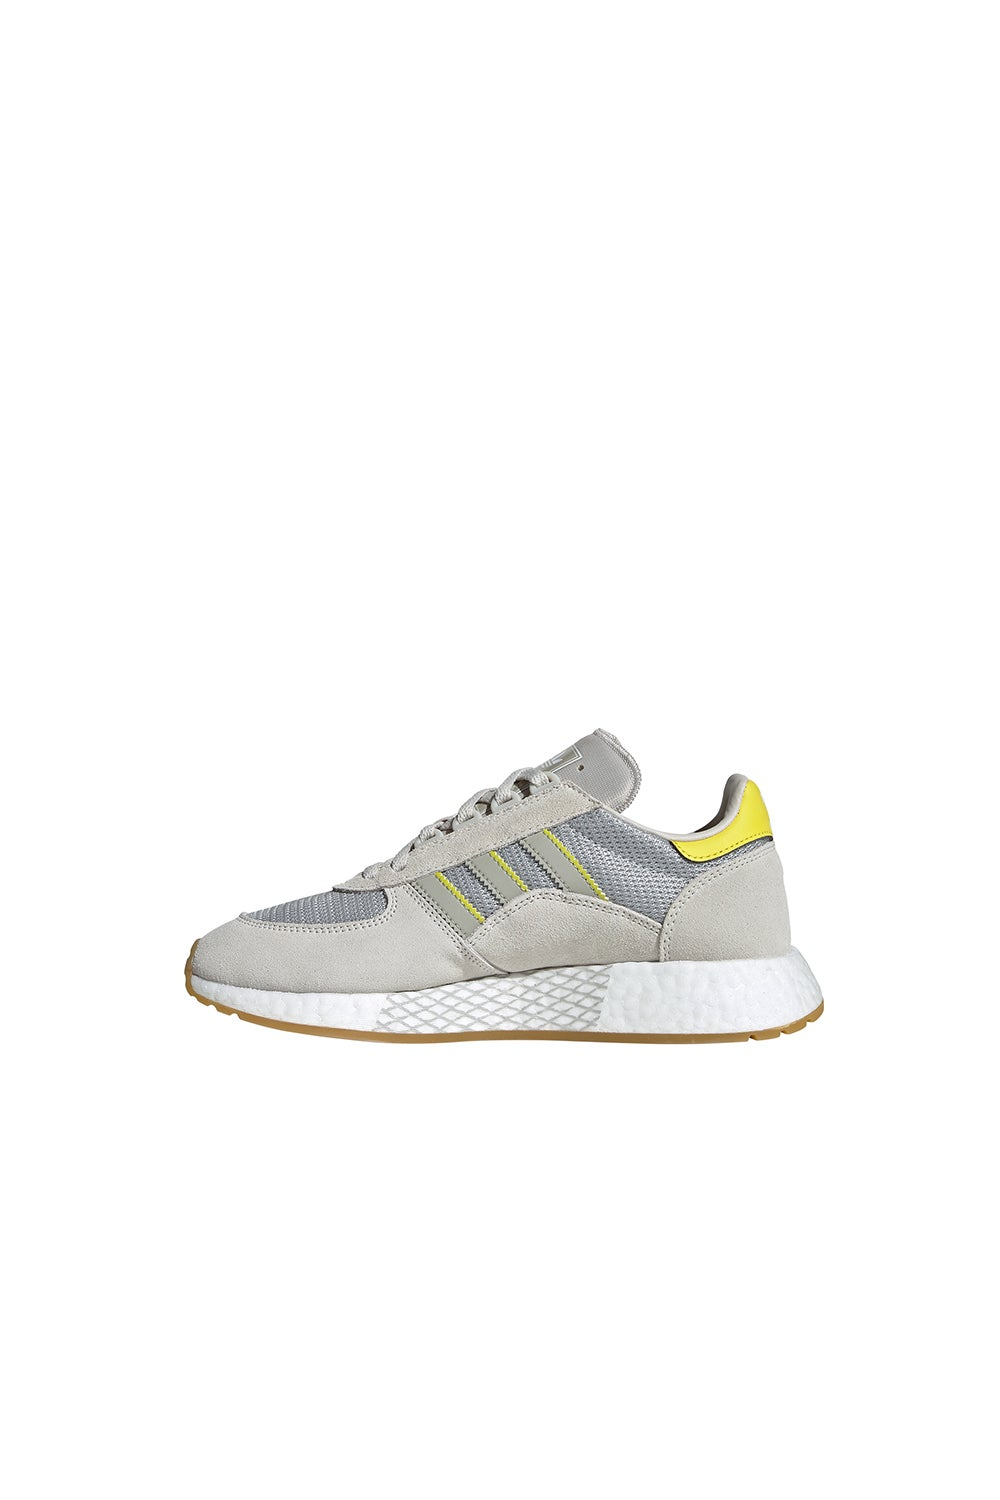 adidas Marathon Tech W Raw White/Sesame/Bright Yellow